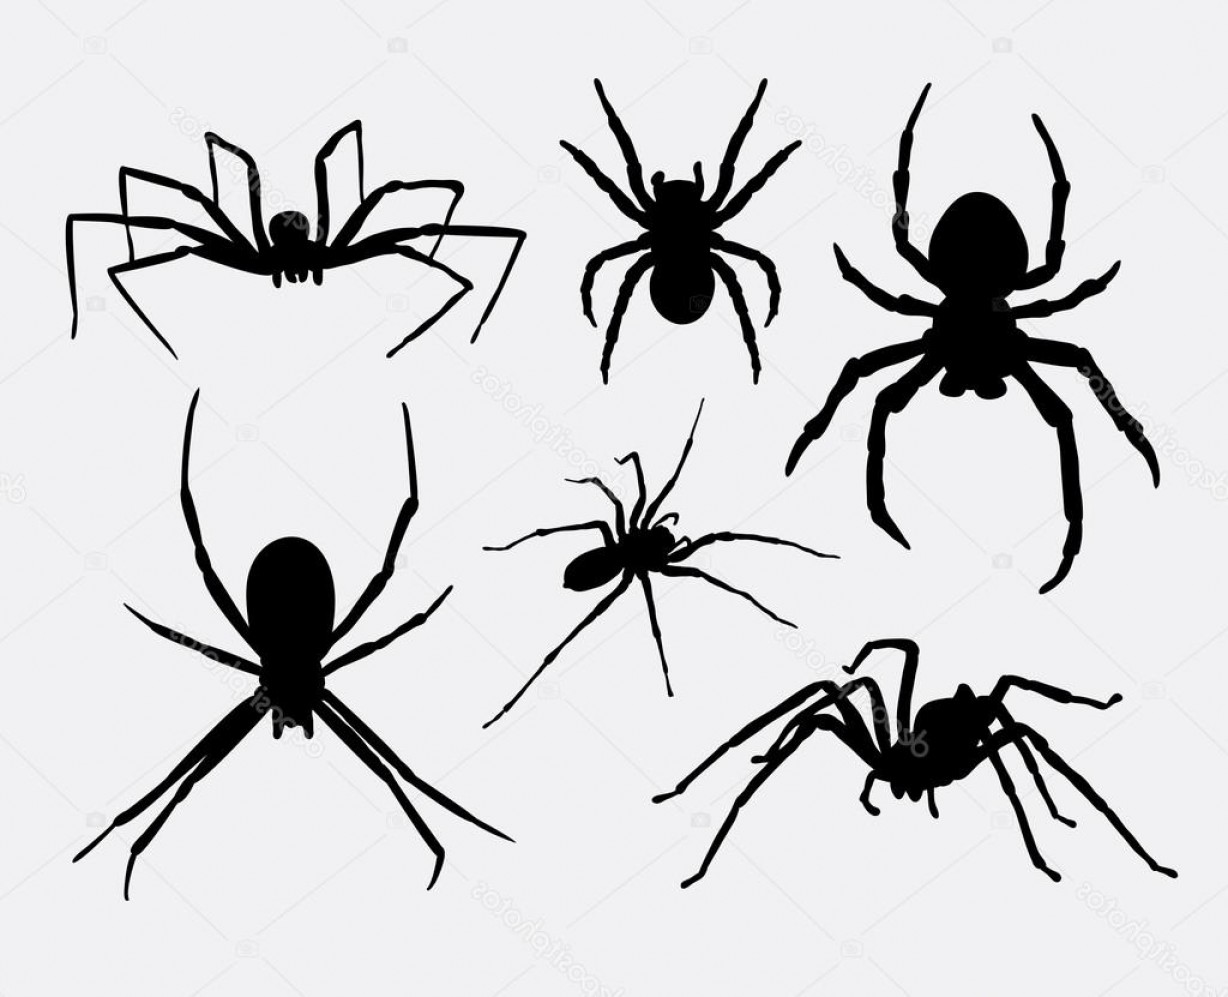 Easy Spider Vector Illustration: Stock Illustration Spider Insect Animal Silhouettes